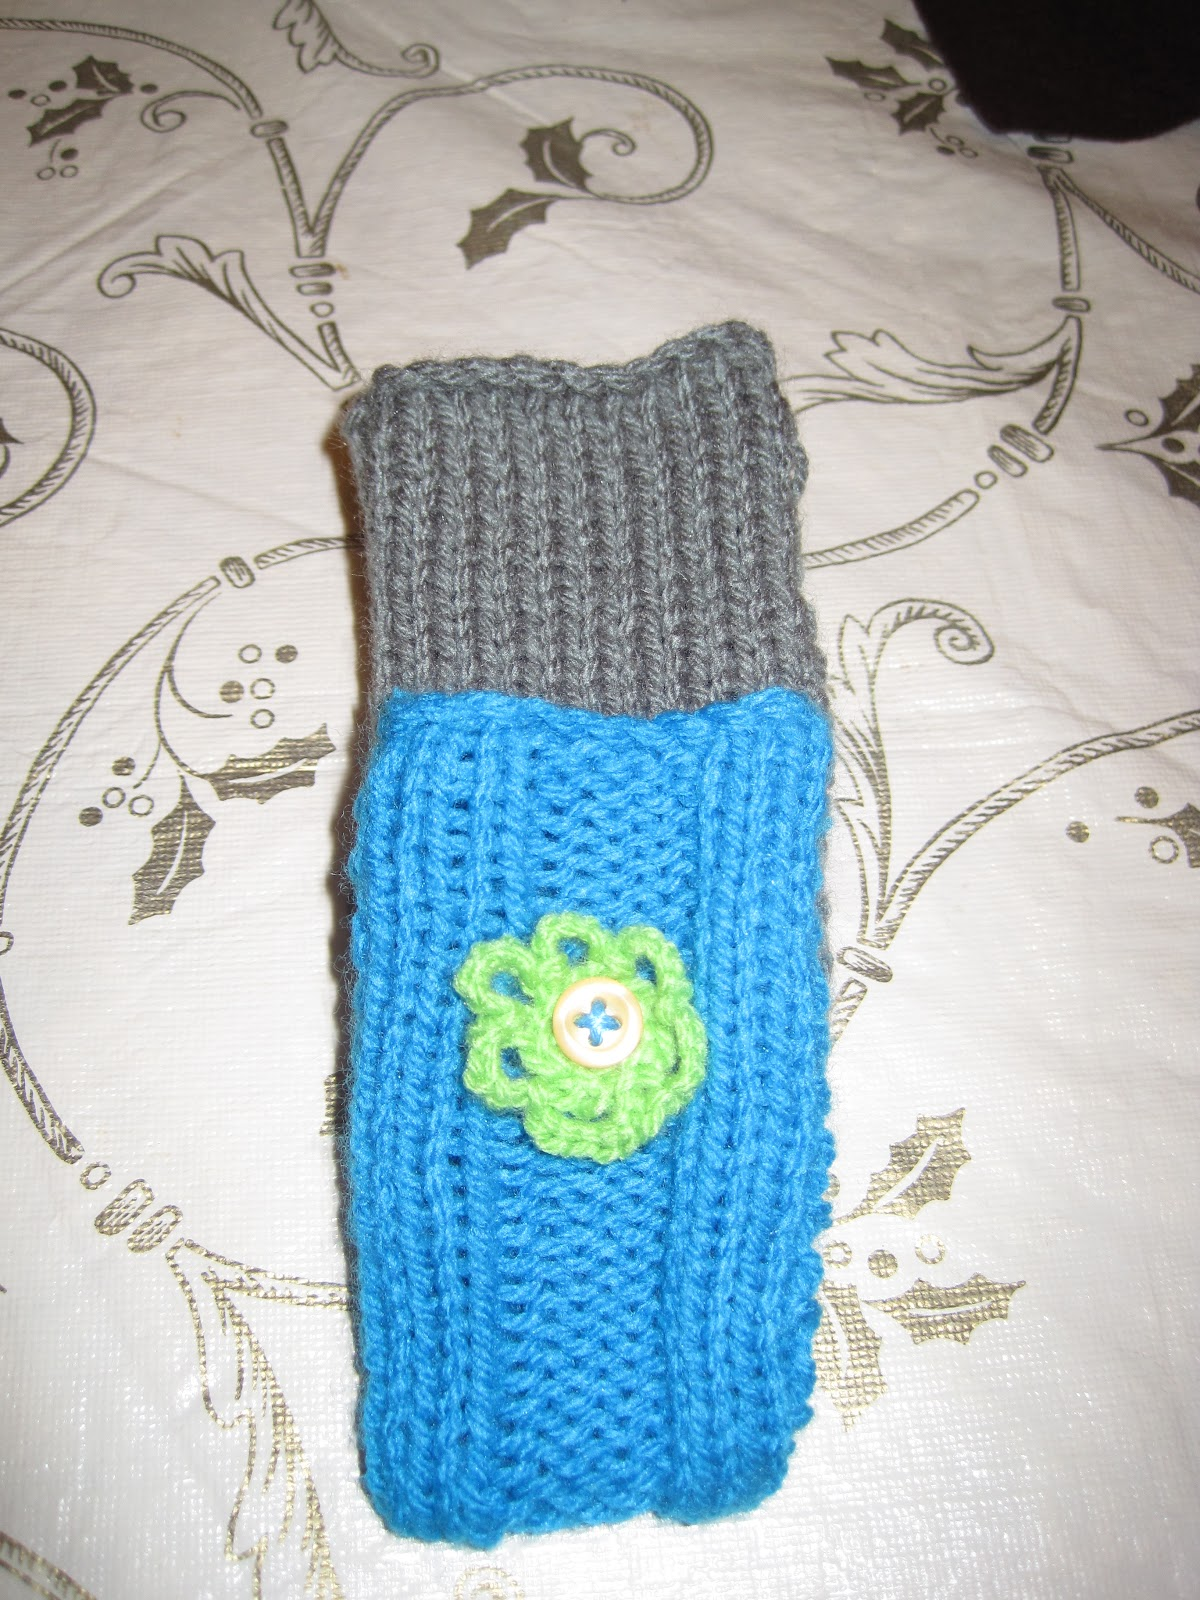 Knitting Patterns For Phone Socks : Every Day is a New Creation: Knitted Mobile Phone Socks